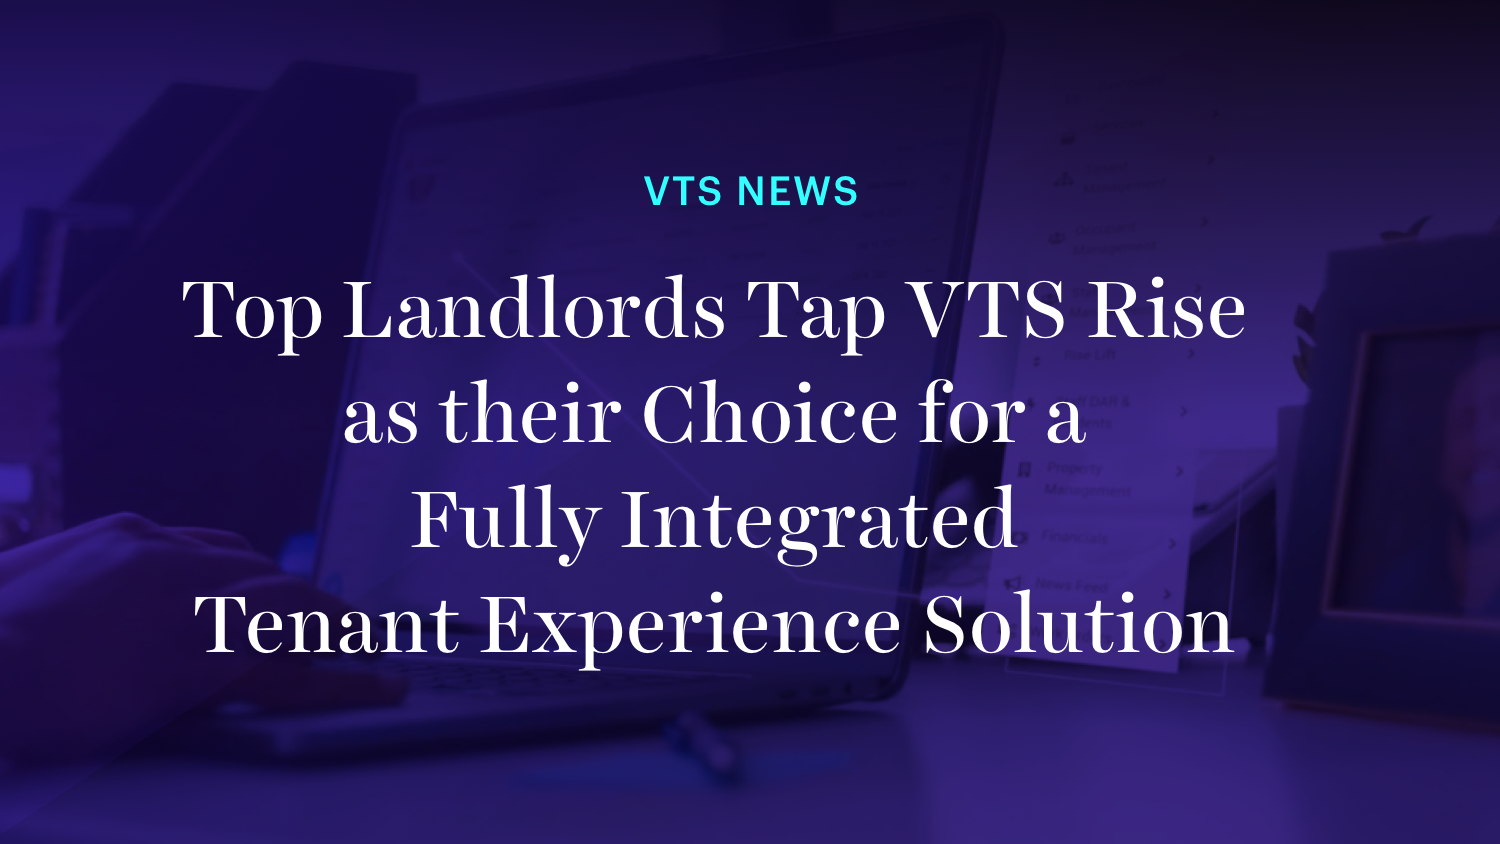 Top Landlords Tap VTS Rise as their Choice for a Fully Integrated Tenant Experience Solution